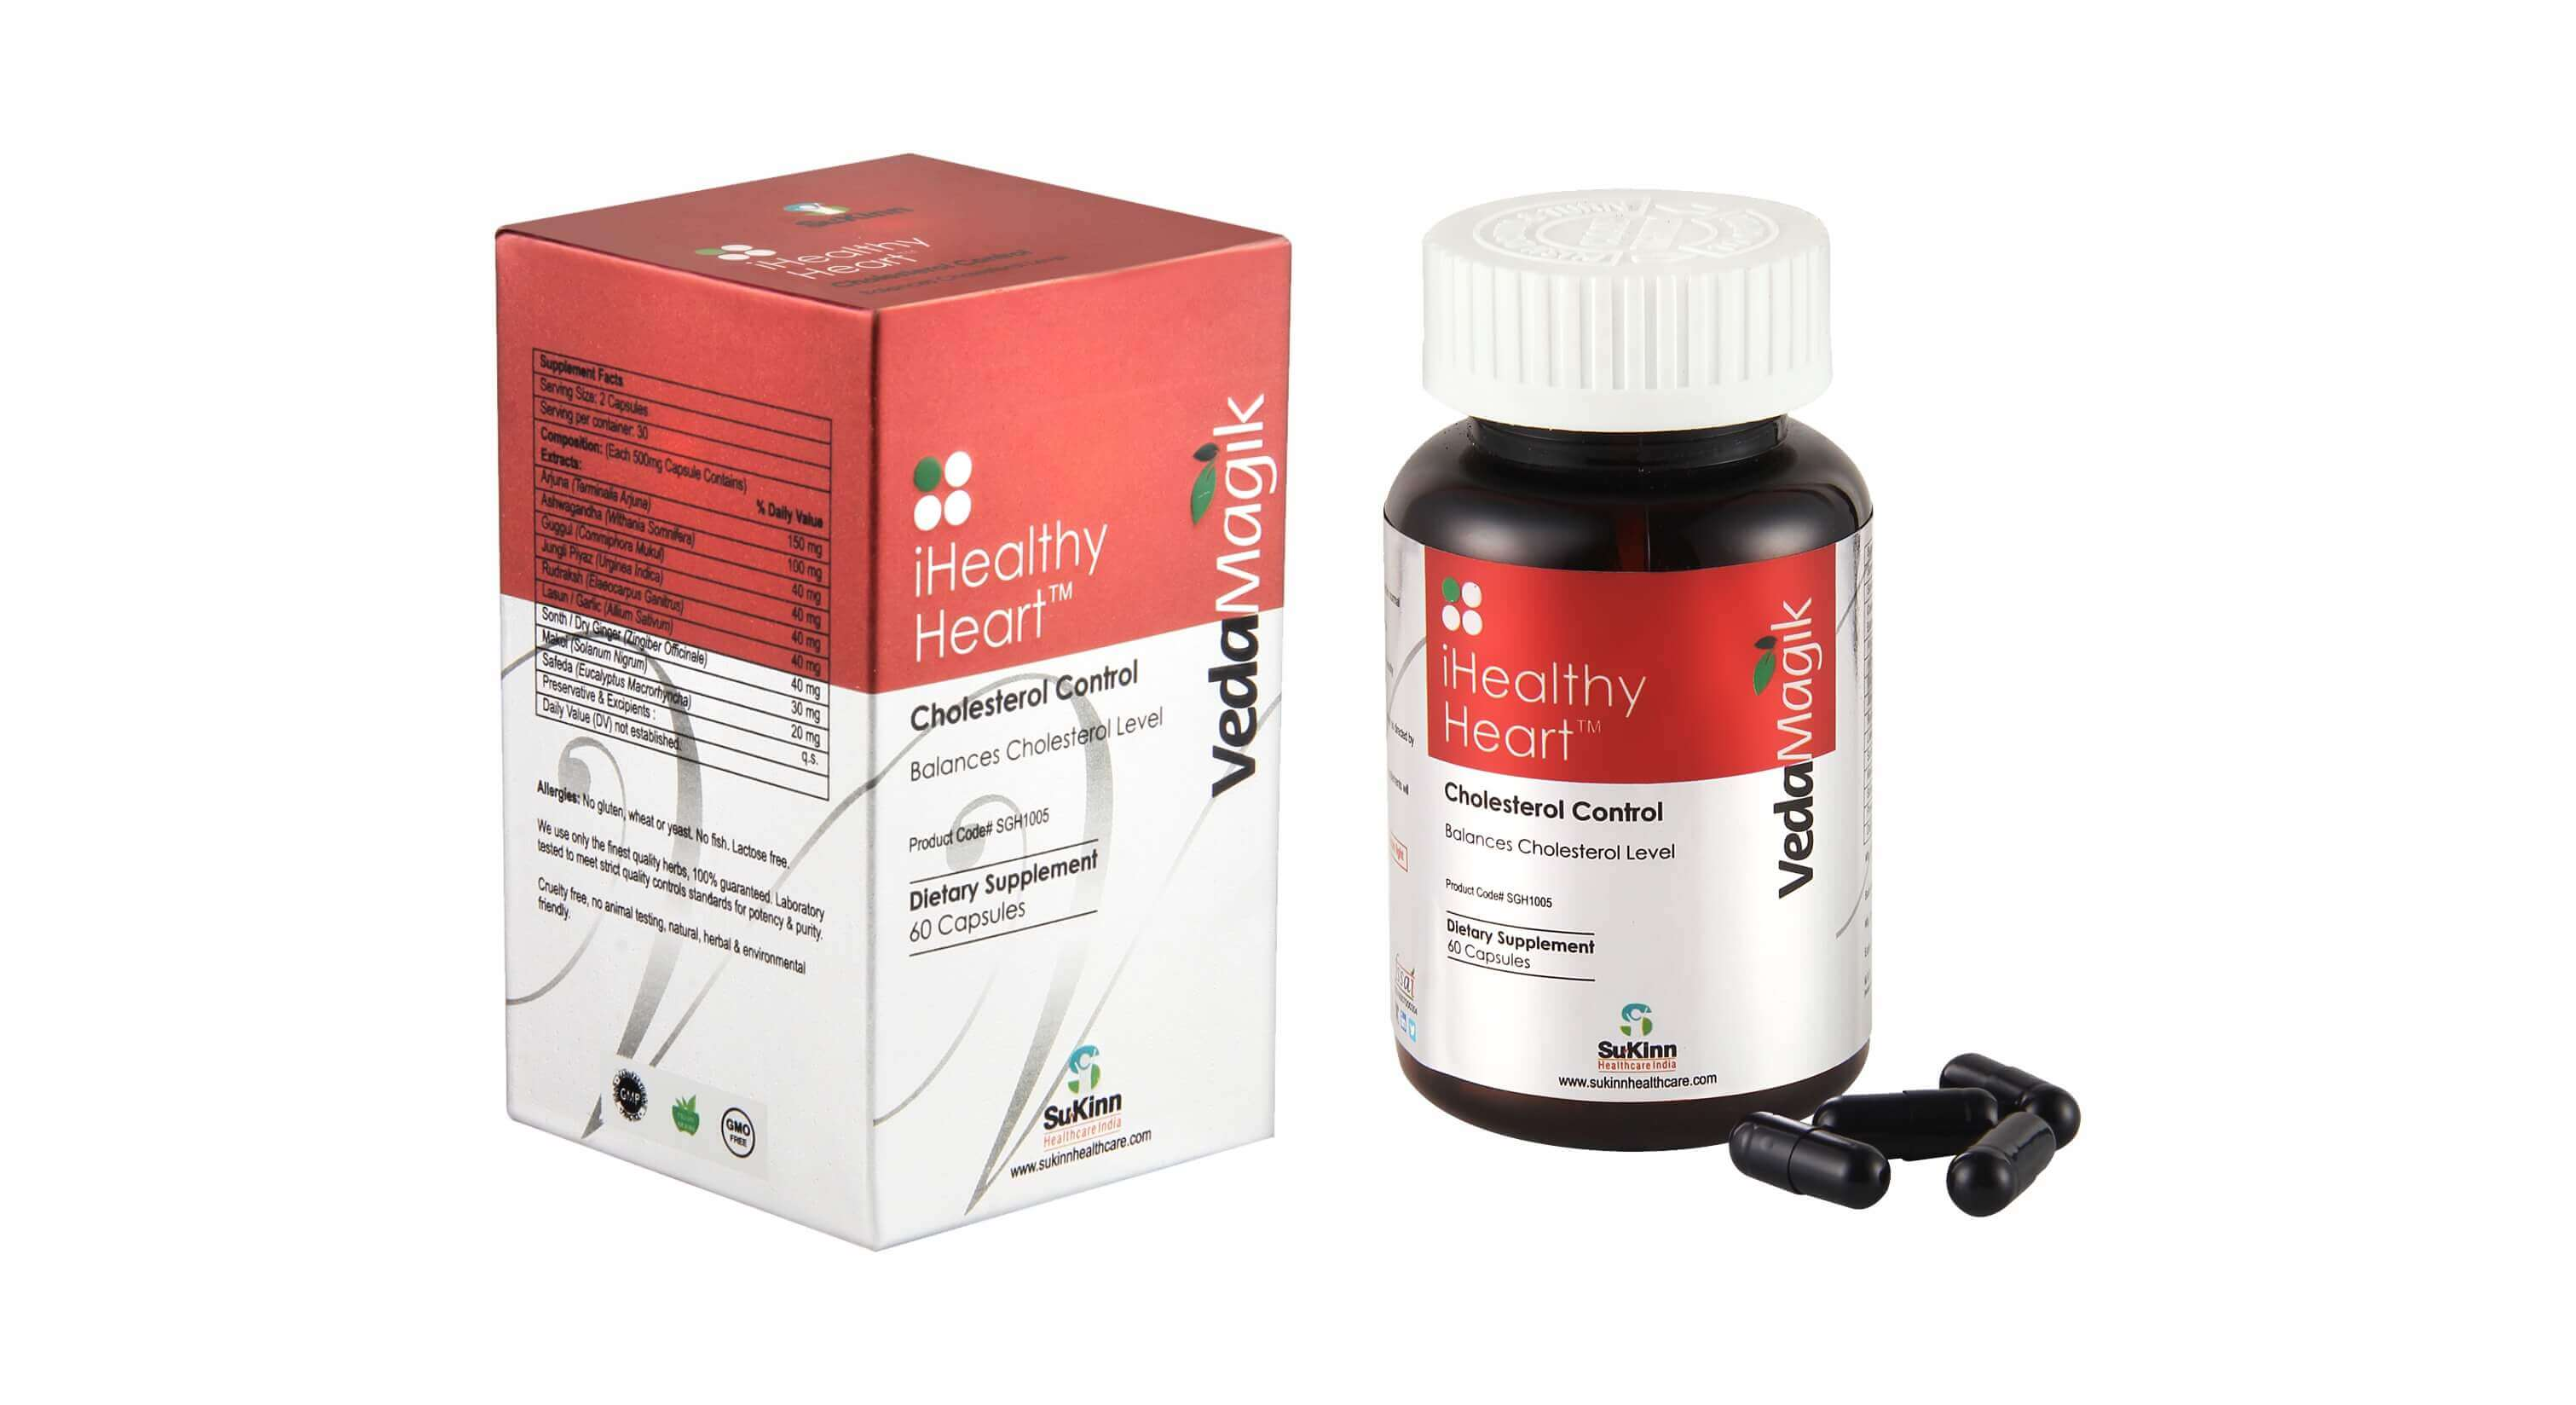 HimPharm - White Label, Private Label & Contract Manufacturing